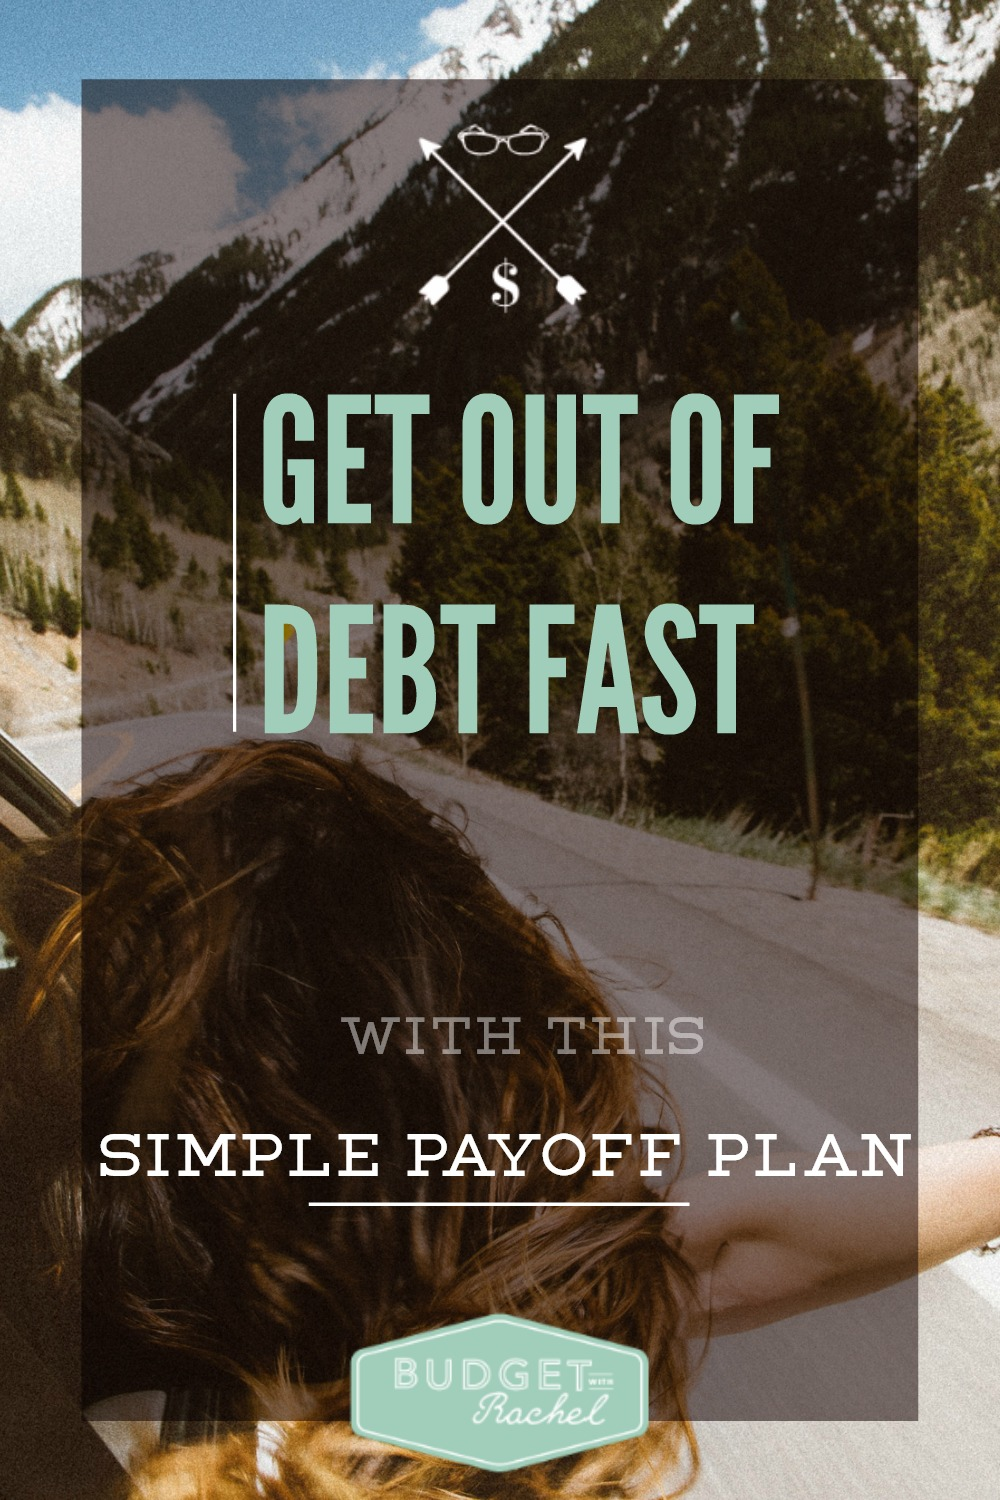 Win At Paying Off Debt:  How to Gain Momentum When Your Debt Feels Impossible. This payoff plan is so simple! I was able to pay off $4,000 within the first 2 months of implementing this plan. I can't wait to figure out how soon I will be debt free!!